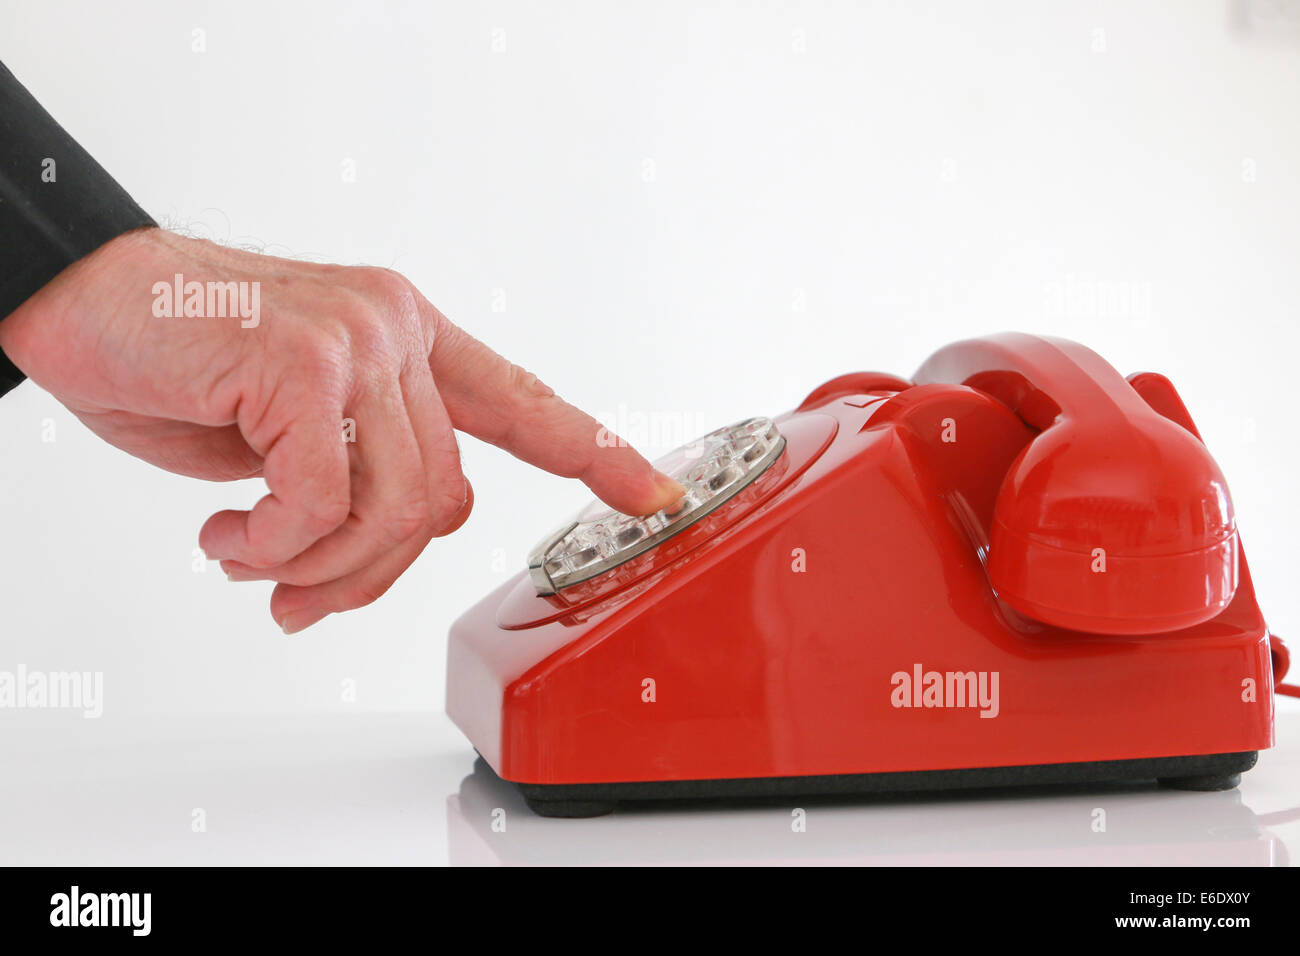 Red retro telephone, man dialing. - Stock Image